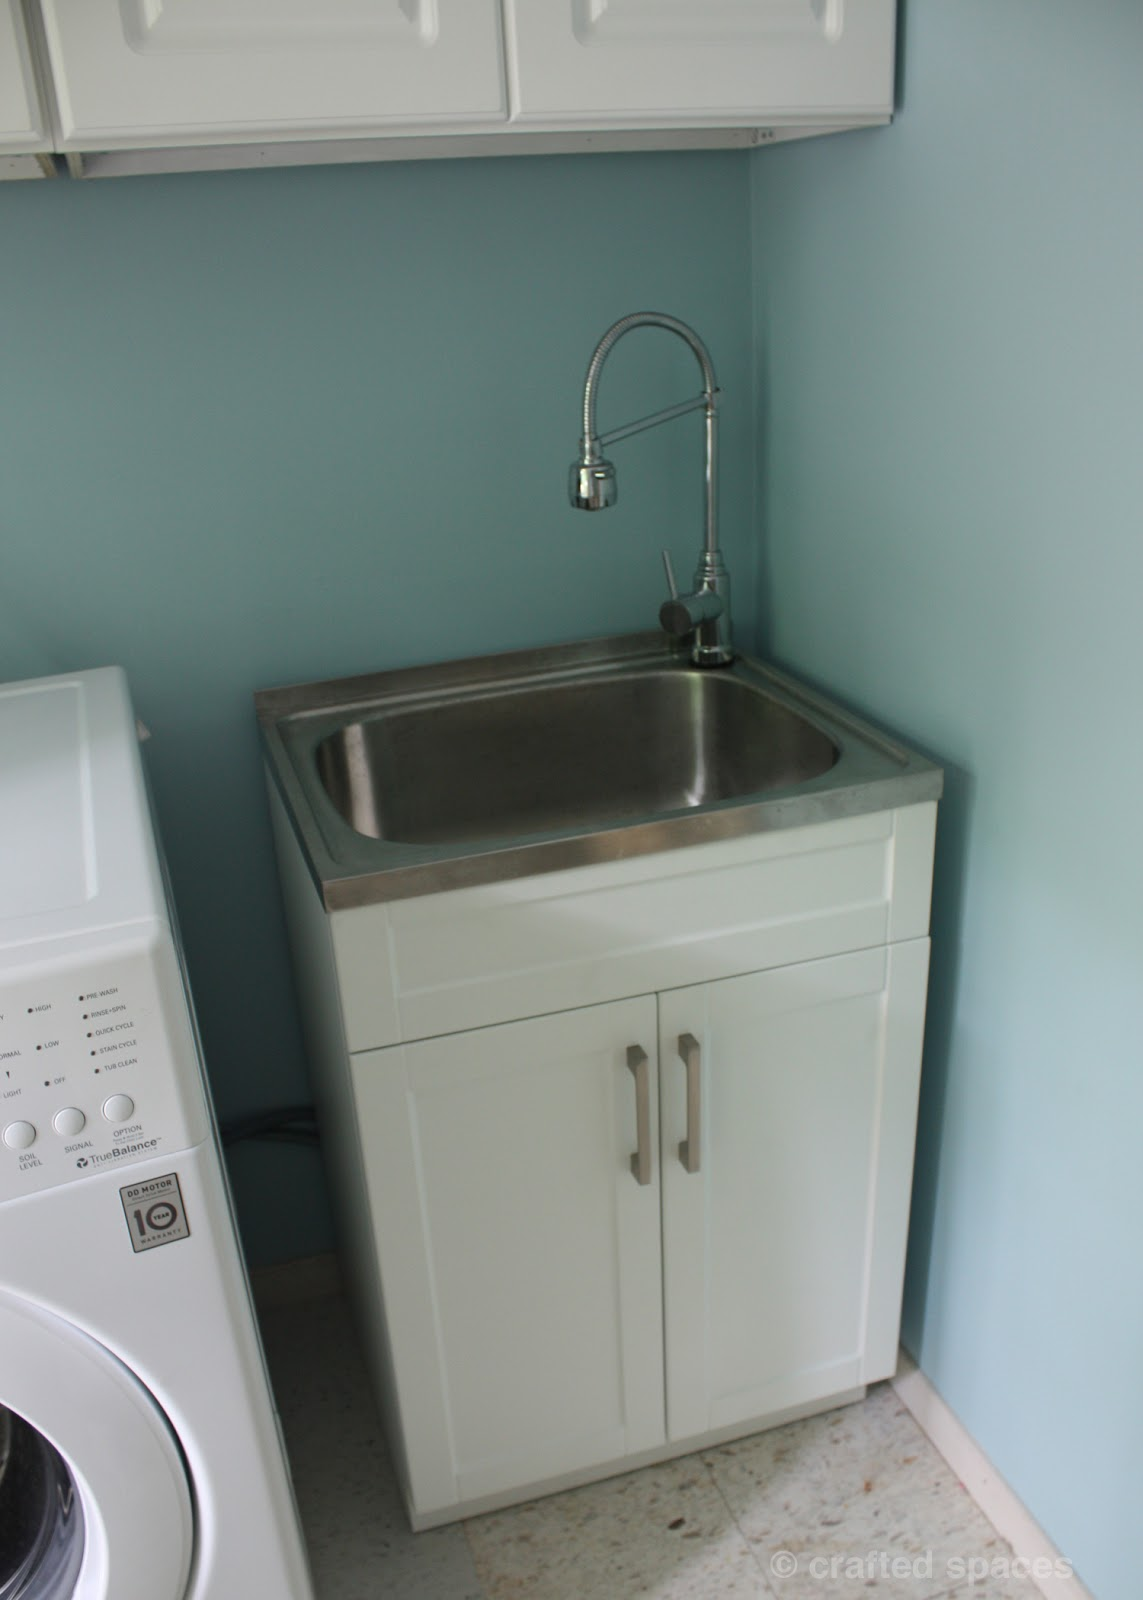 Presenza Deluxe Utility Sink And Storage Cabinet : We were really happy to get this wonderful sink. It is deep enough to ...